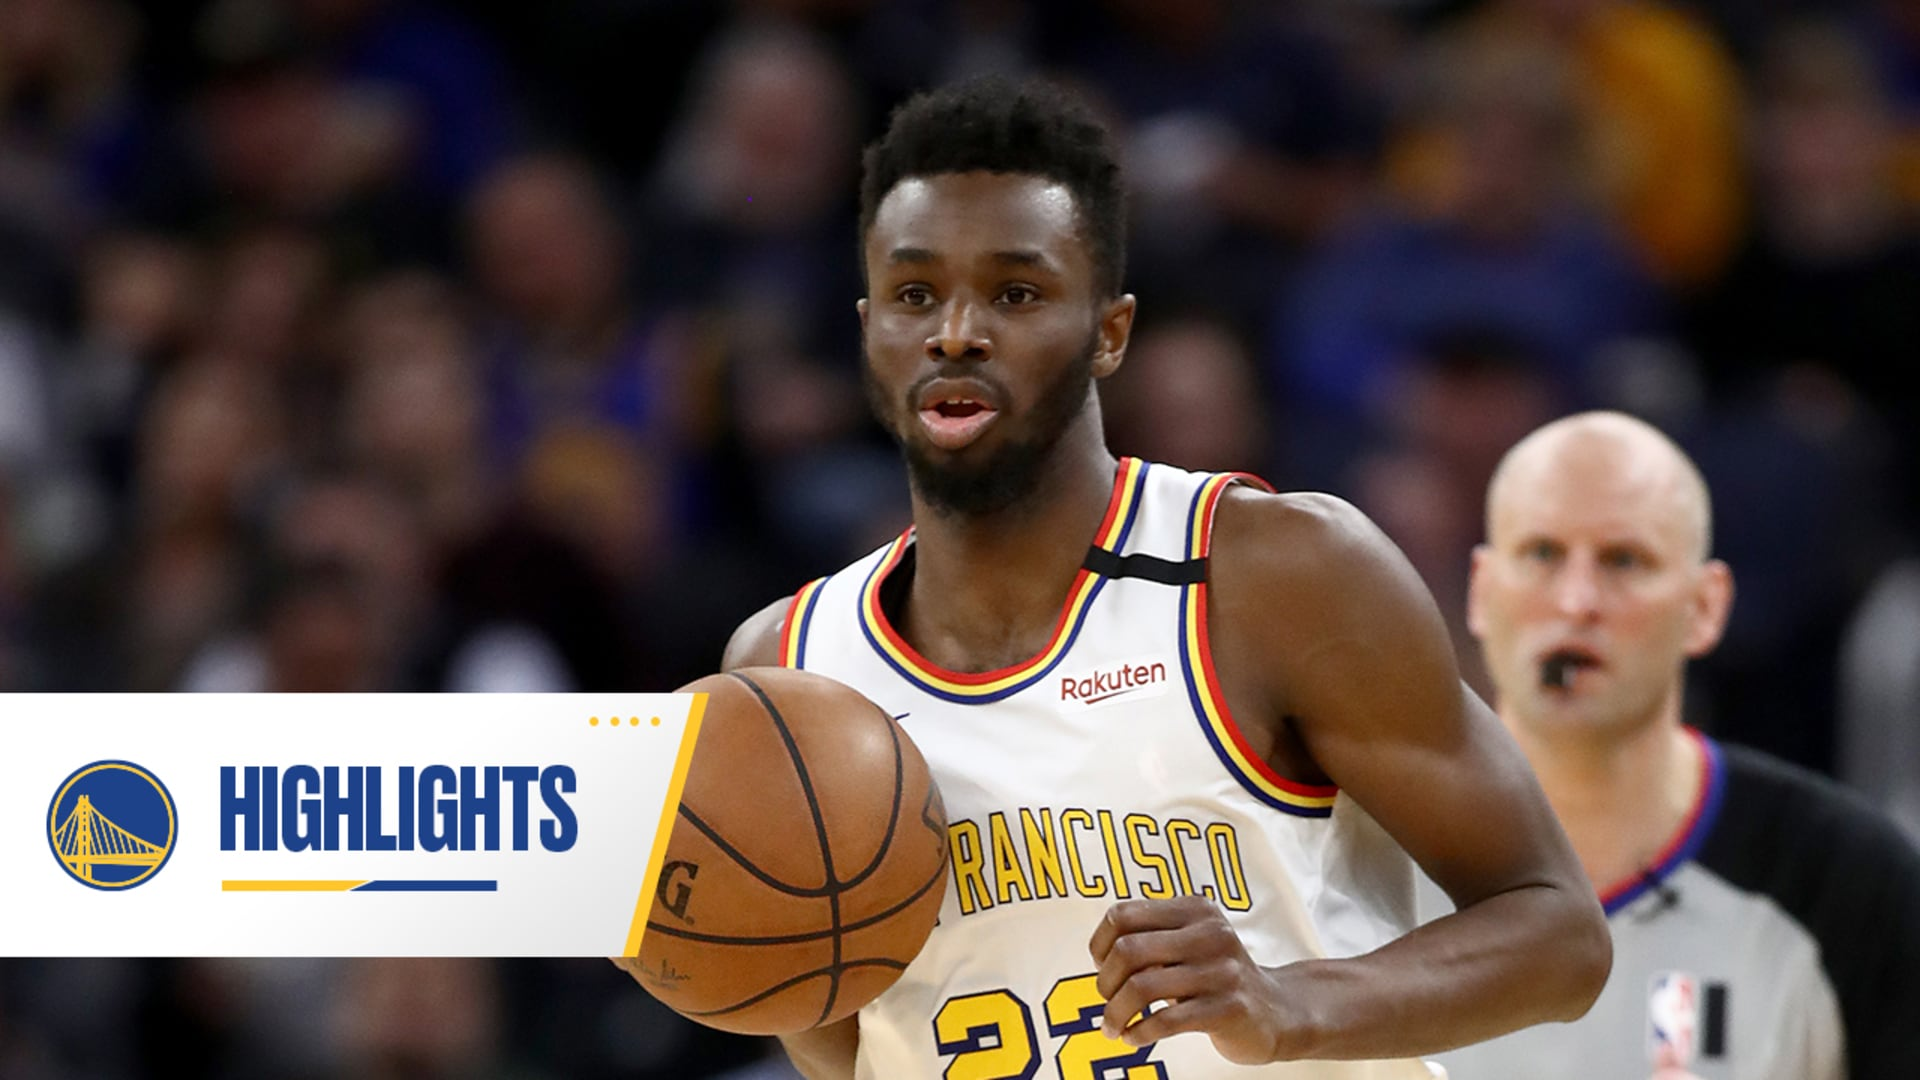 Highlights: End of Season Reinforcements from Andrew Wiggins, Juan Toscano-Anderson, Mychal Mulder